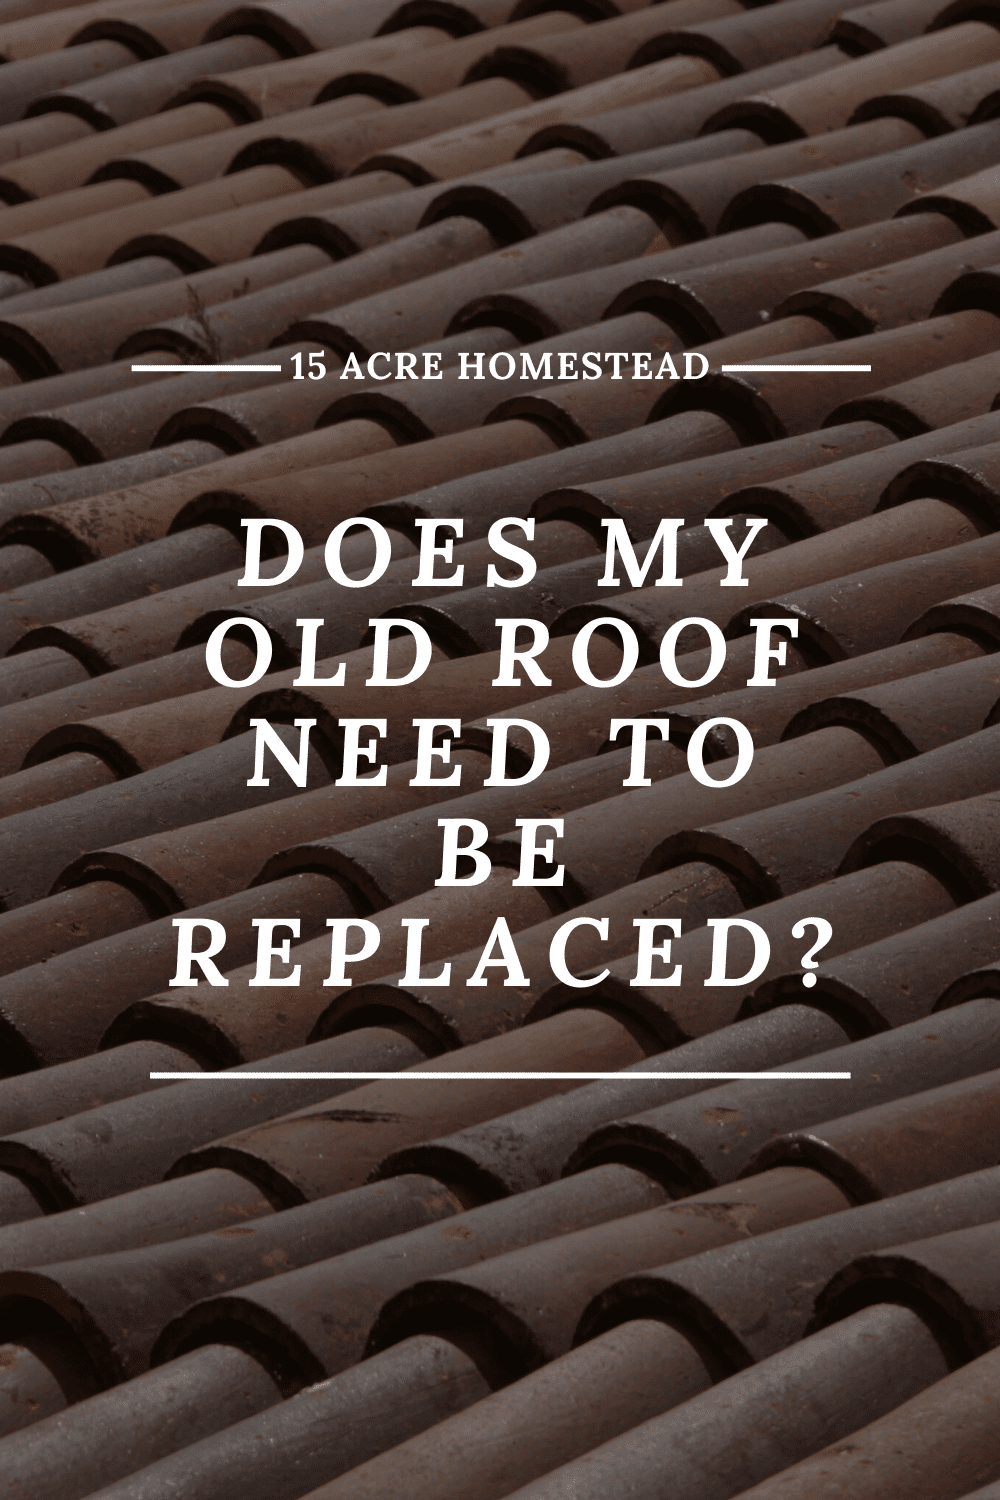 At some point, as a homeowner, you will need to figure out whether your old roof needs to be replaced. Here is how to handle it easily.